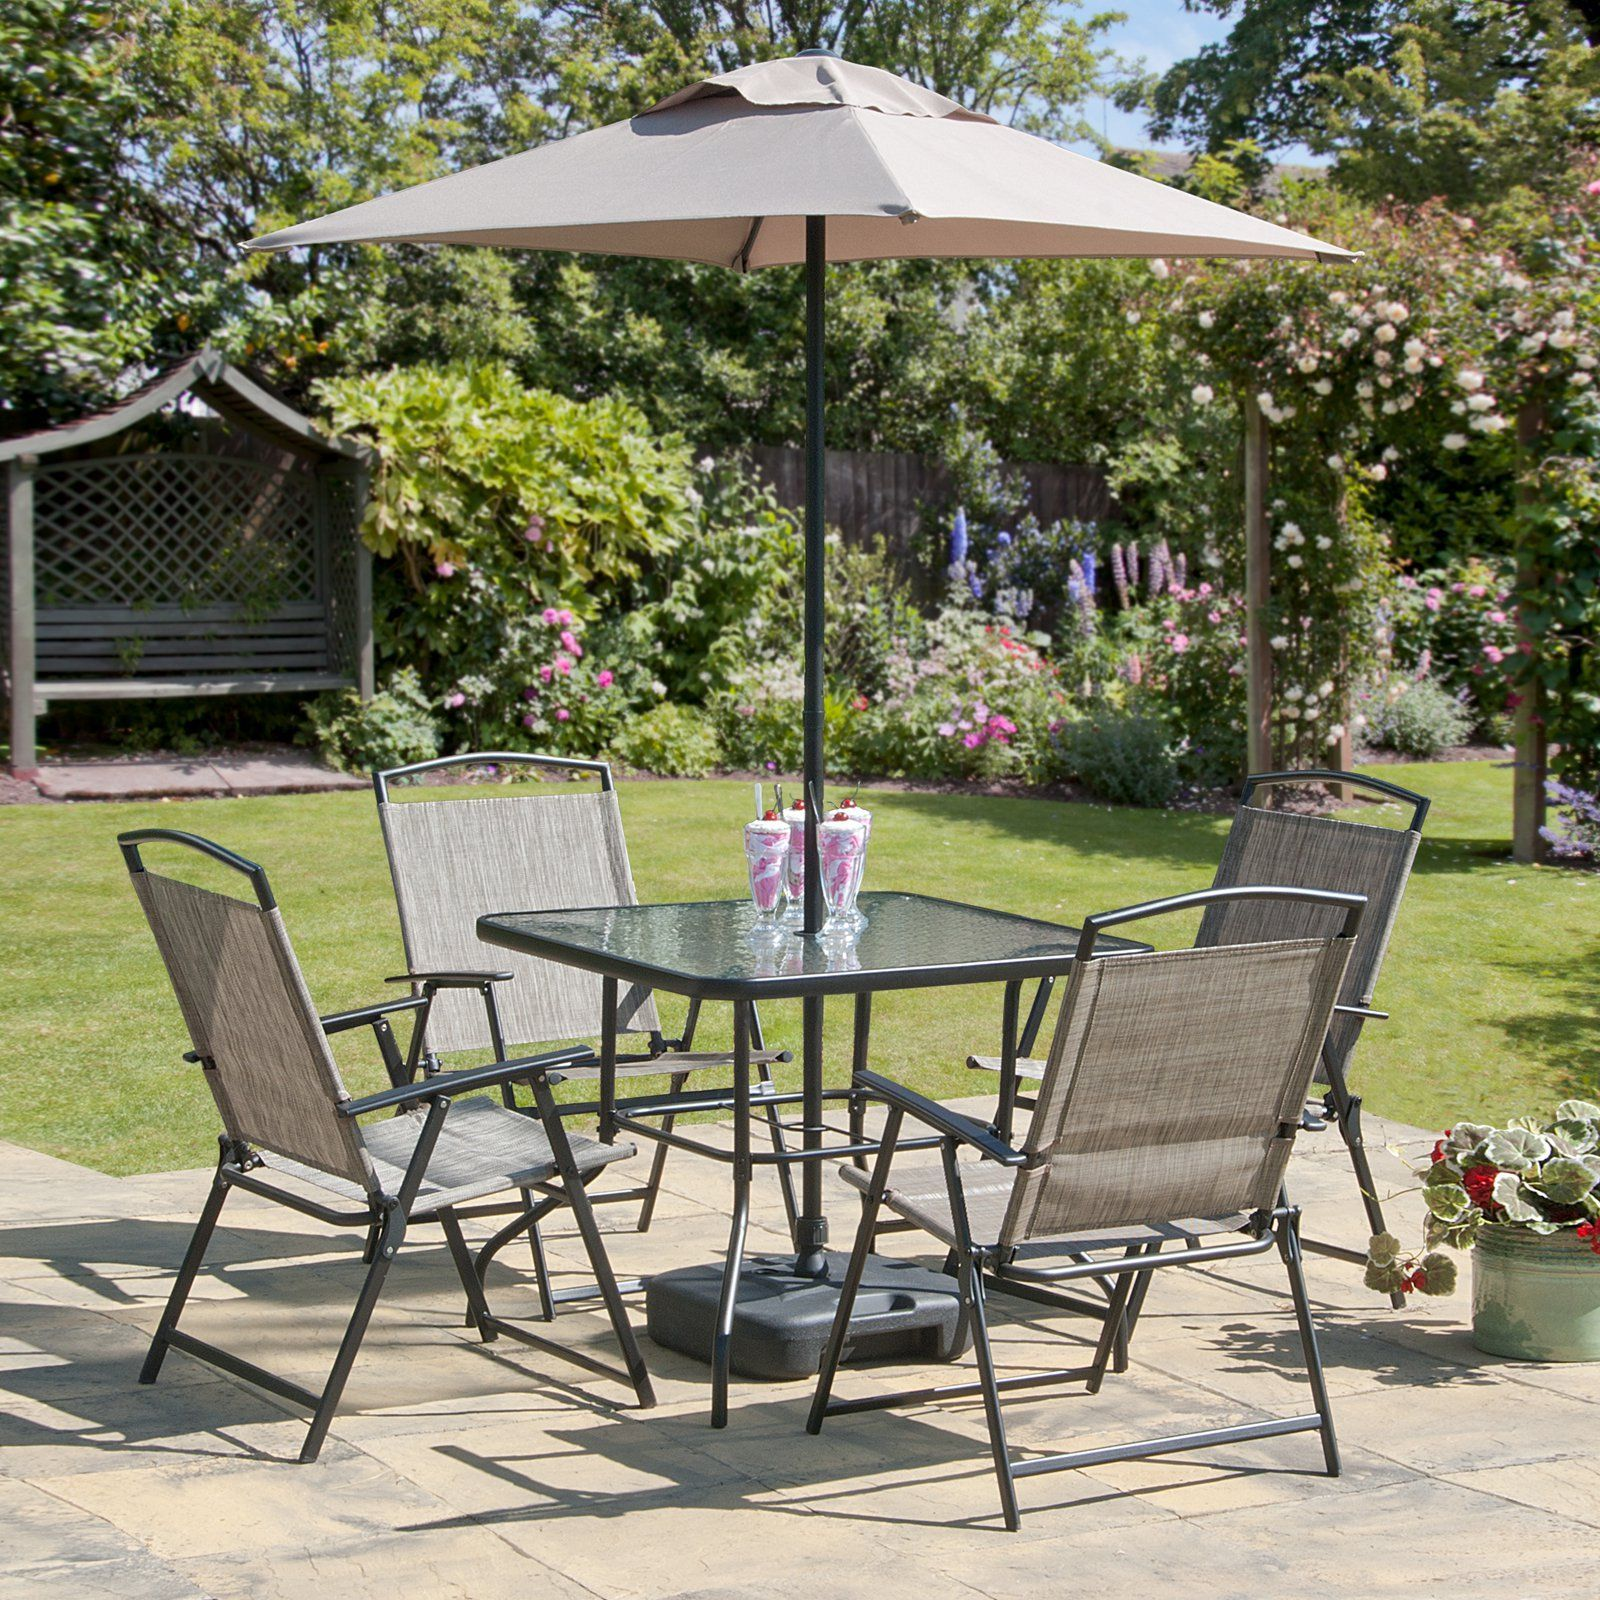 Transcontinental Outdoor Oasis Steel 7 Piece Patio Dining